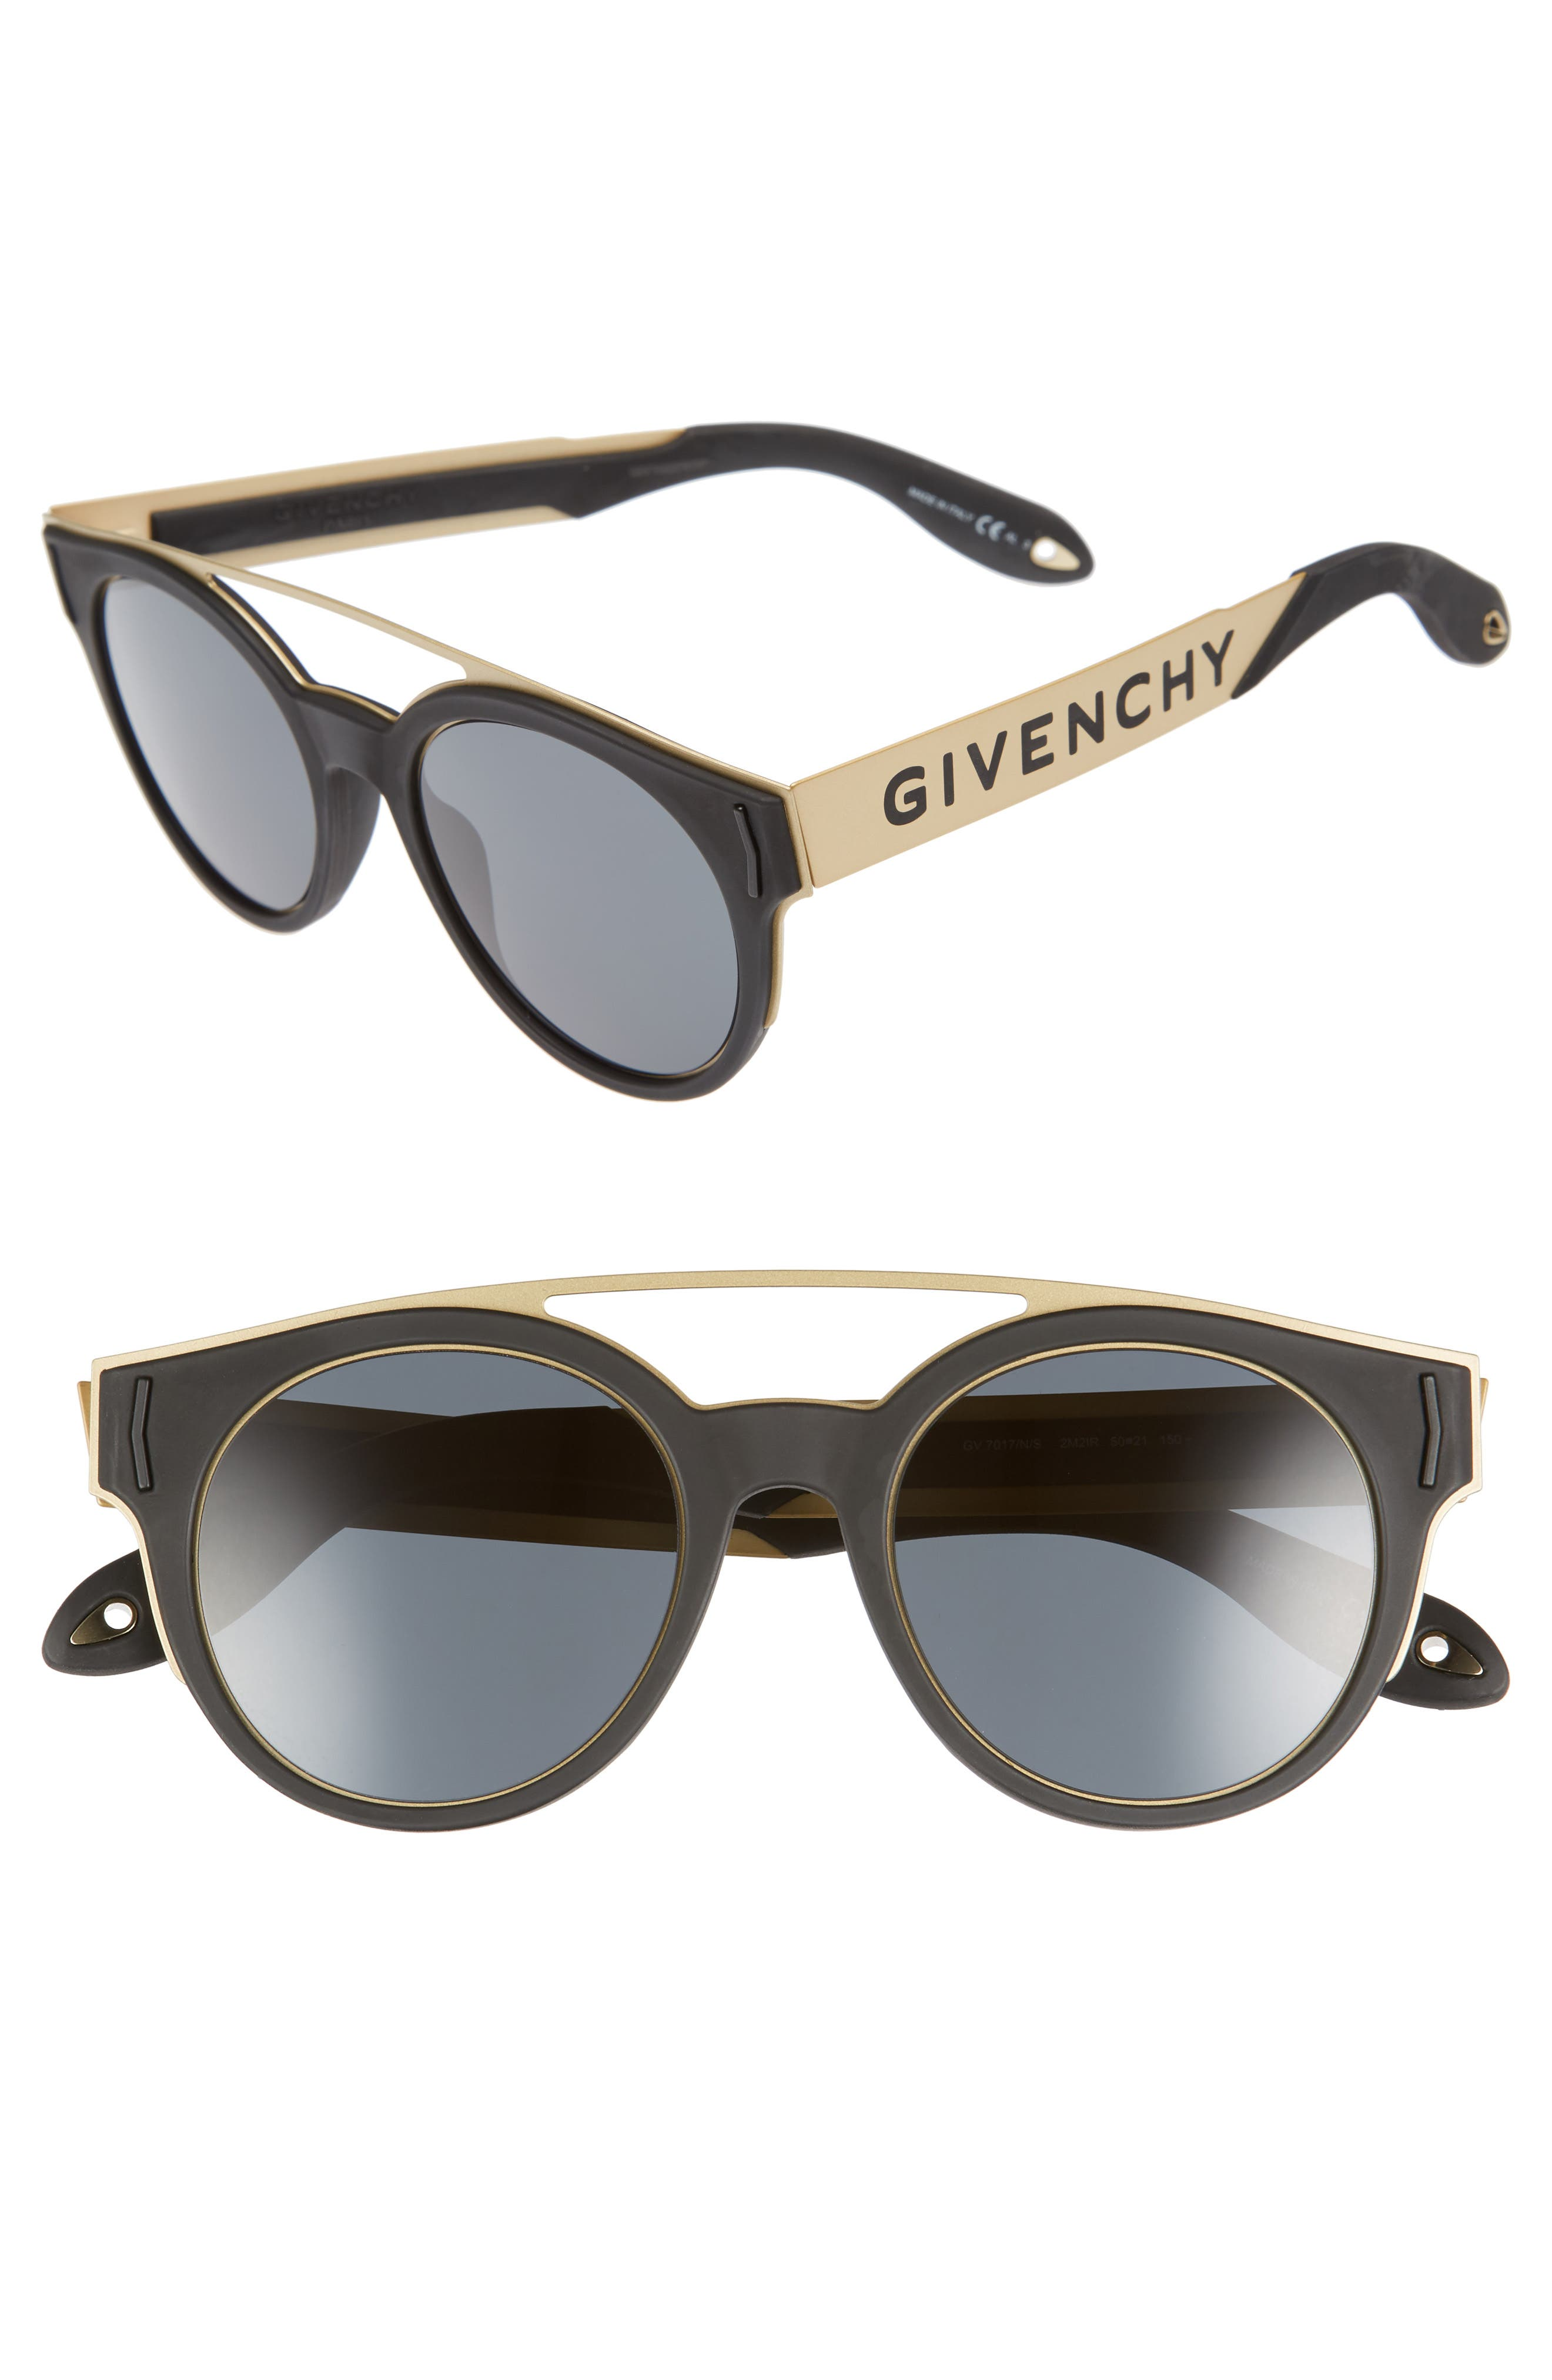 Givenchy 50mm Round Sunglasses